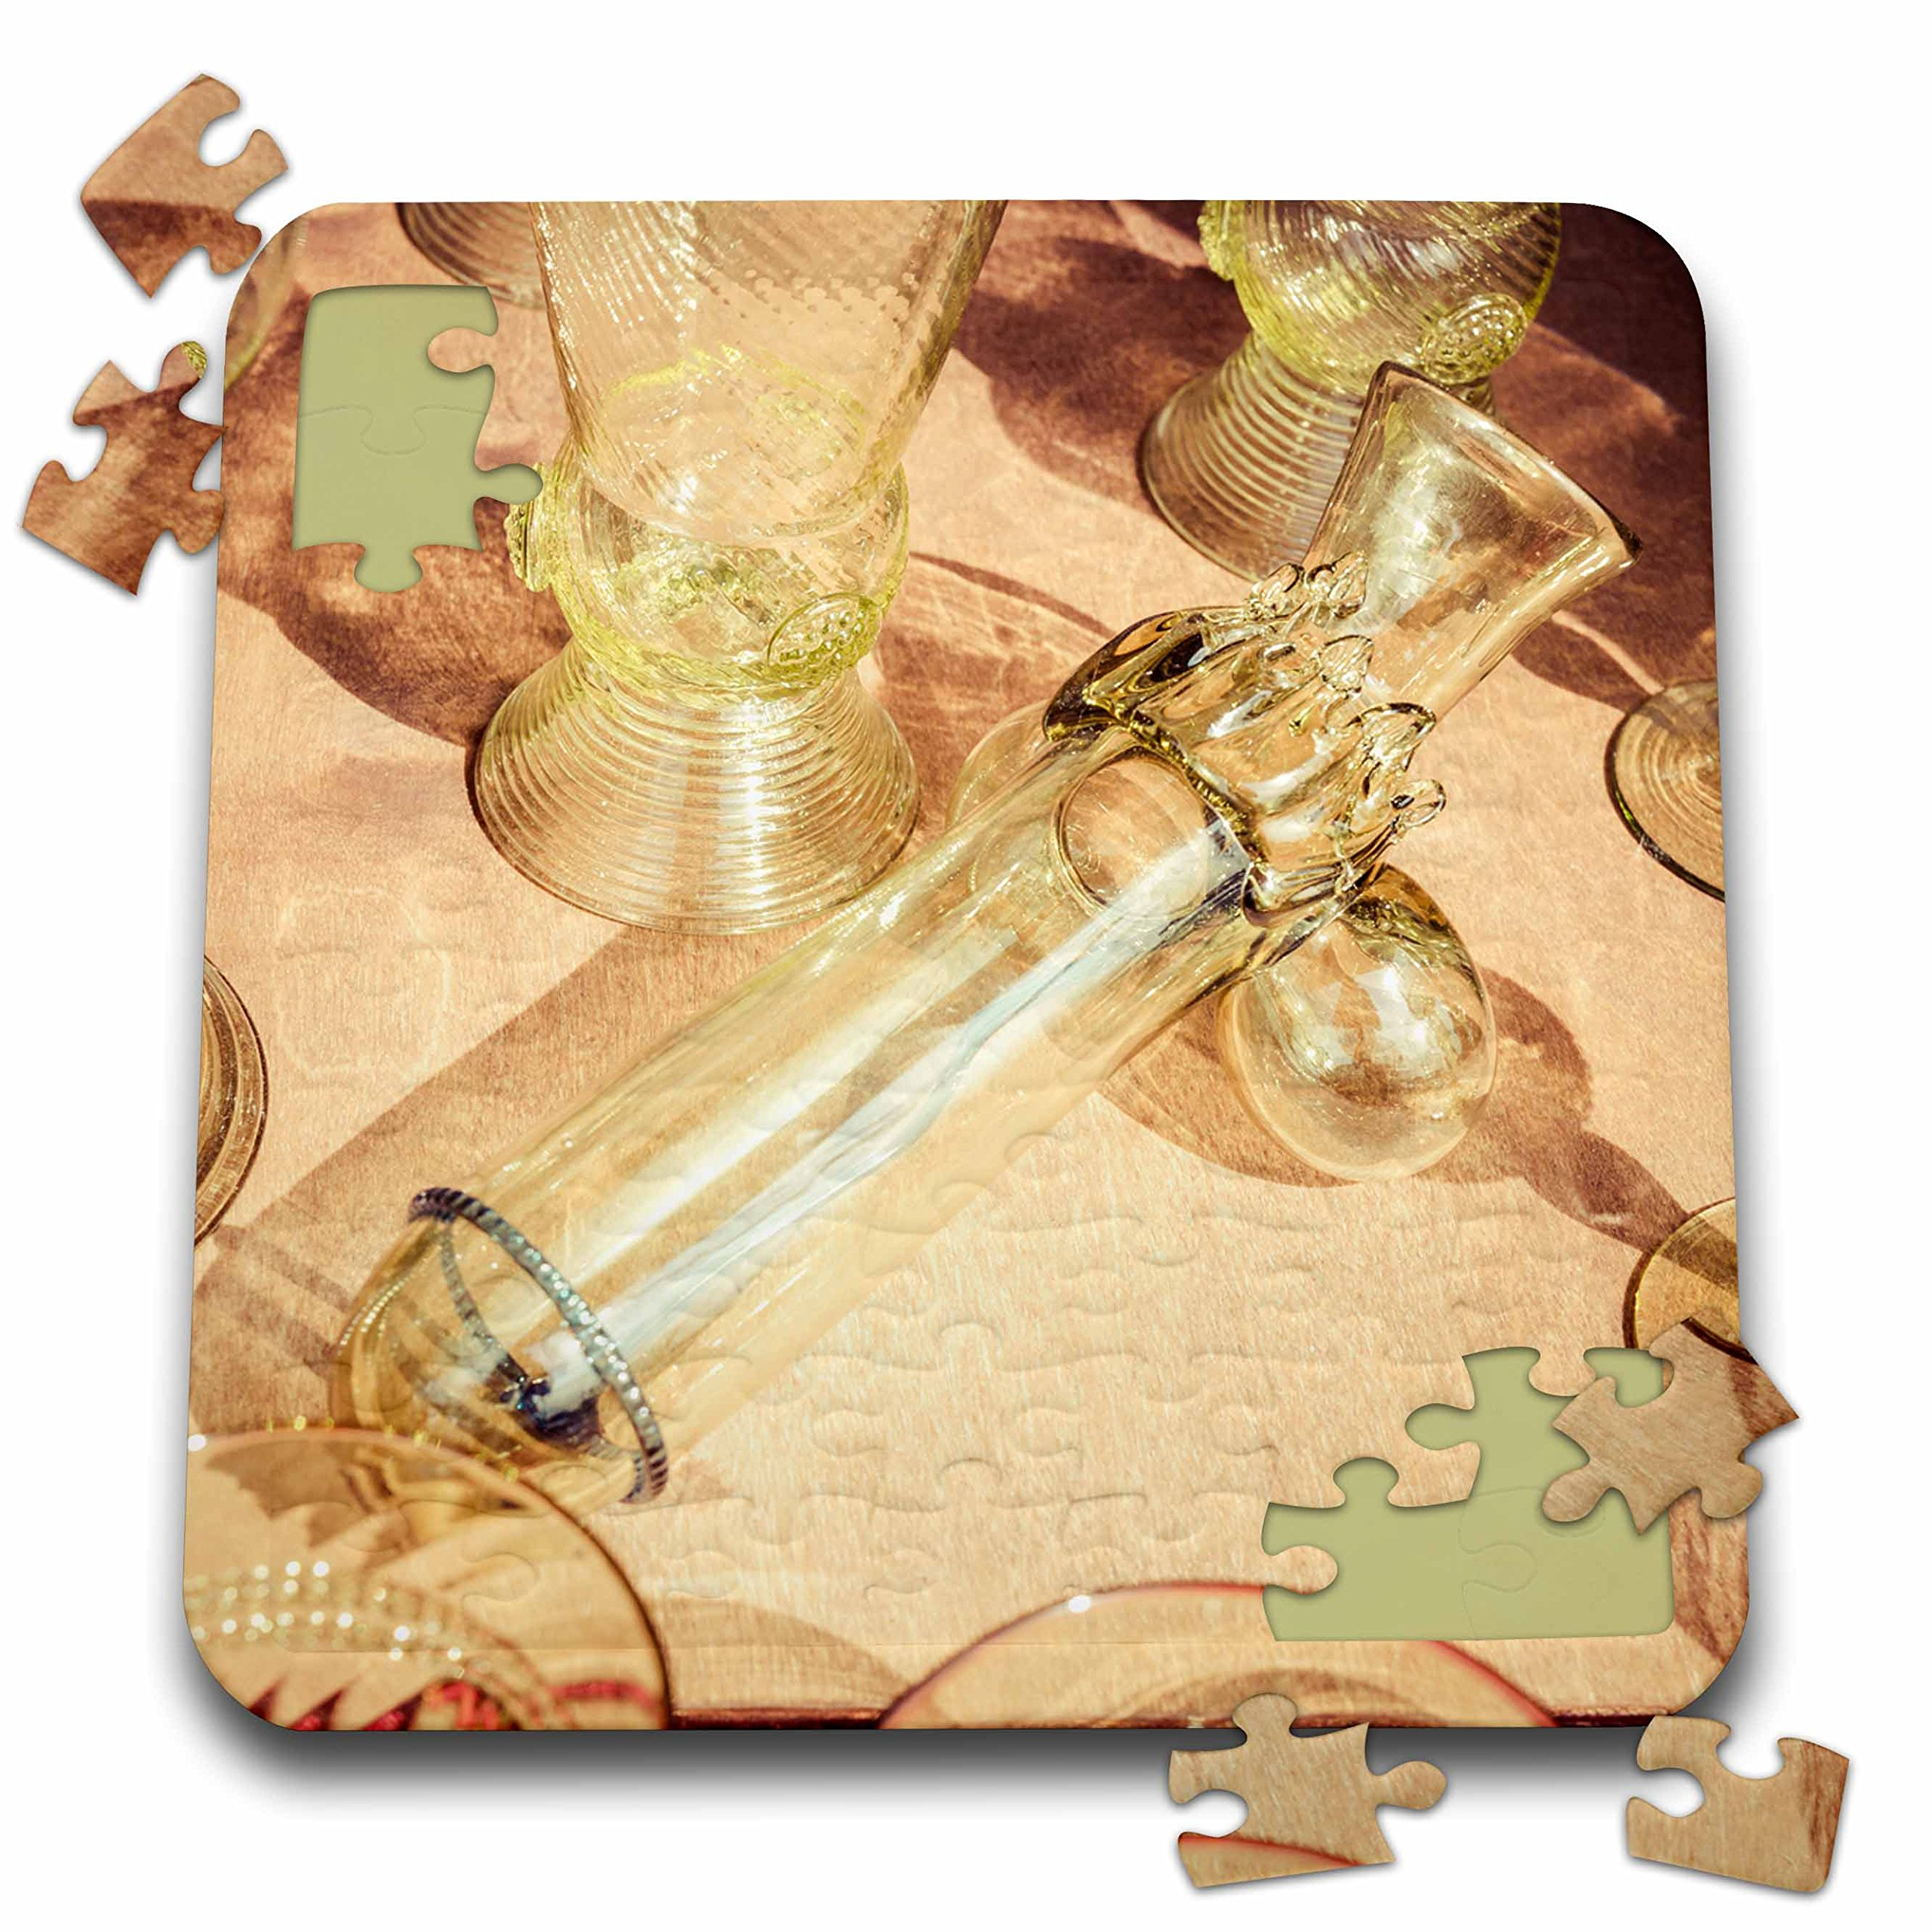 Alexis Photography - Objects - Erotic vintage wine glass. Stylized photo - 10x10 Inch Puzzle (pzl_270827_2)